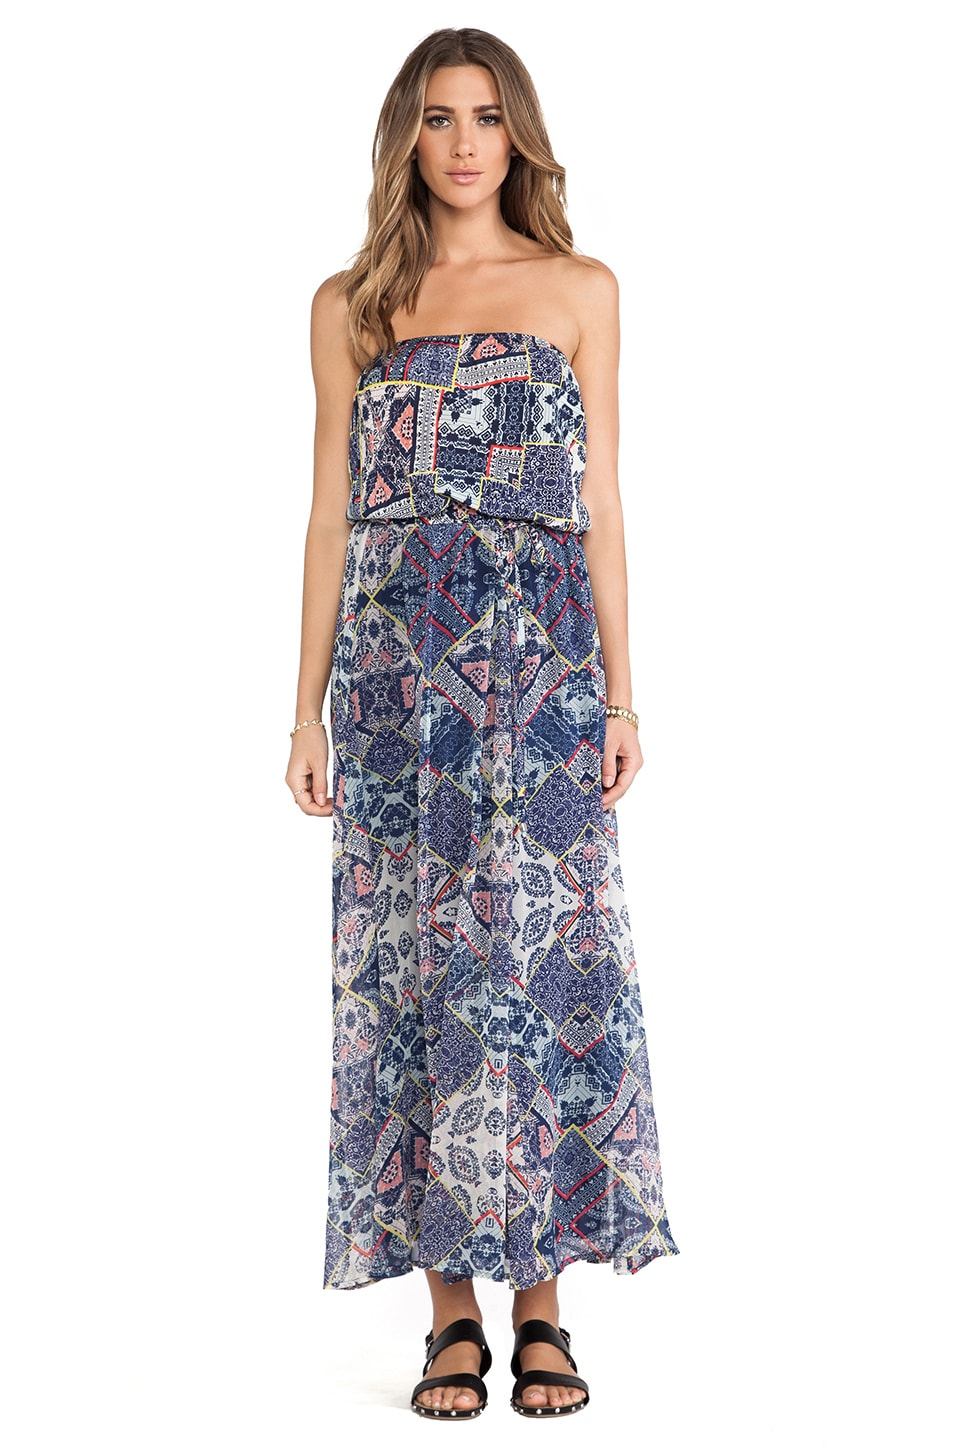 Gypsy 05 Adari Printed Silk Tube Maxi Dress in Blue Multi